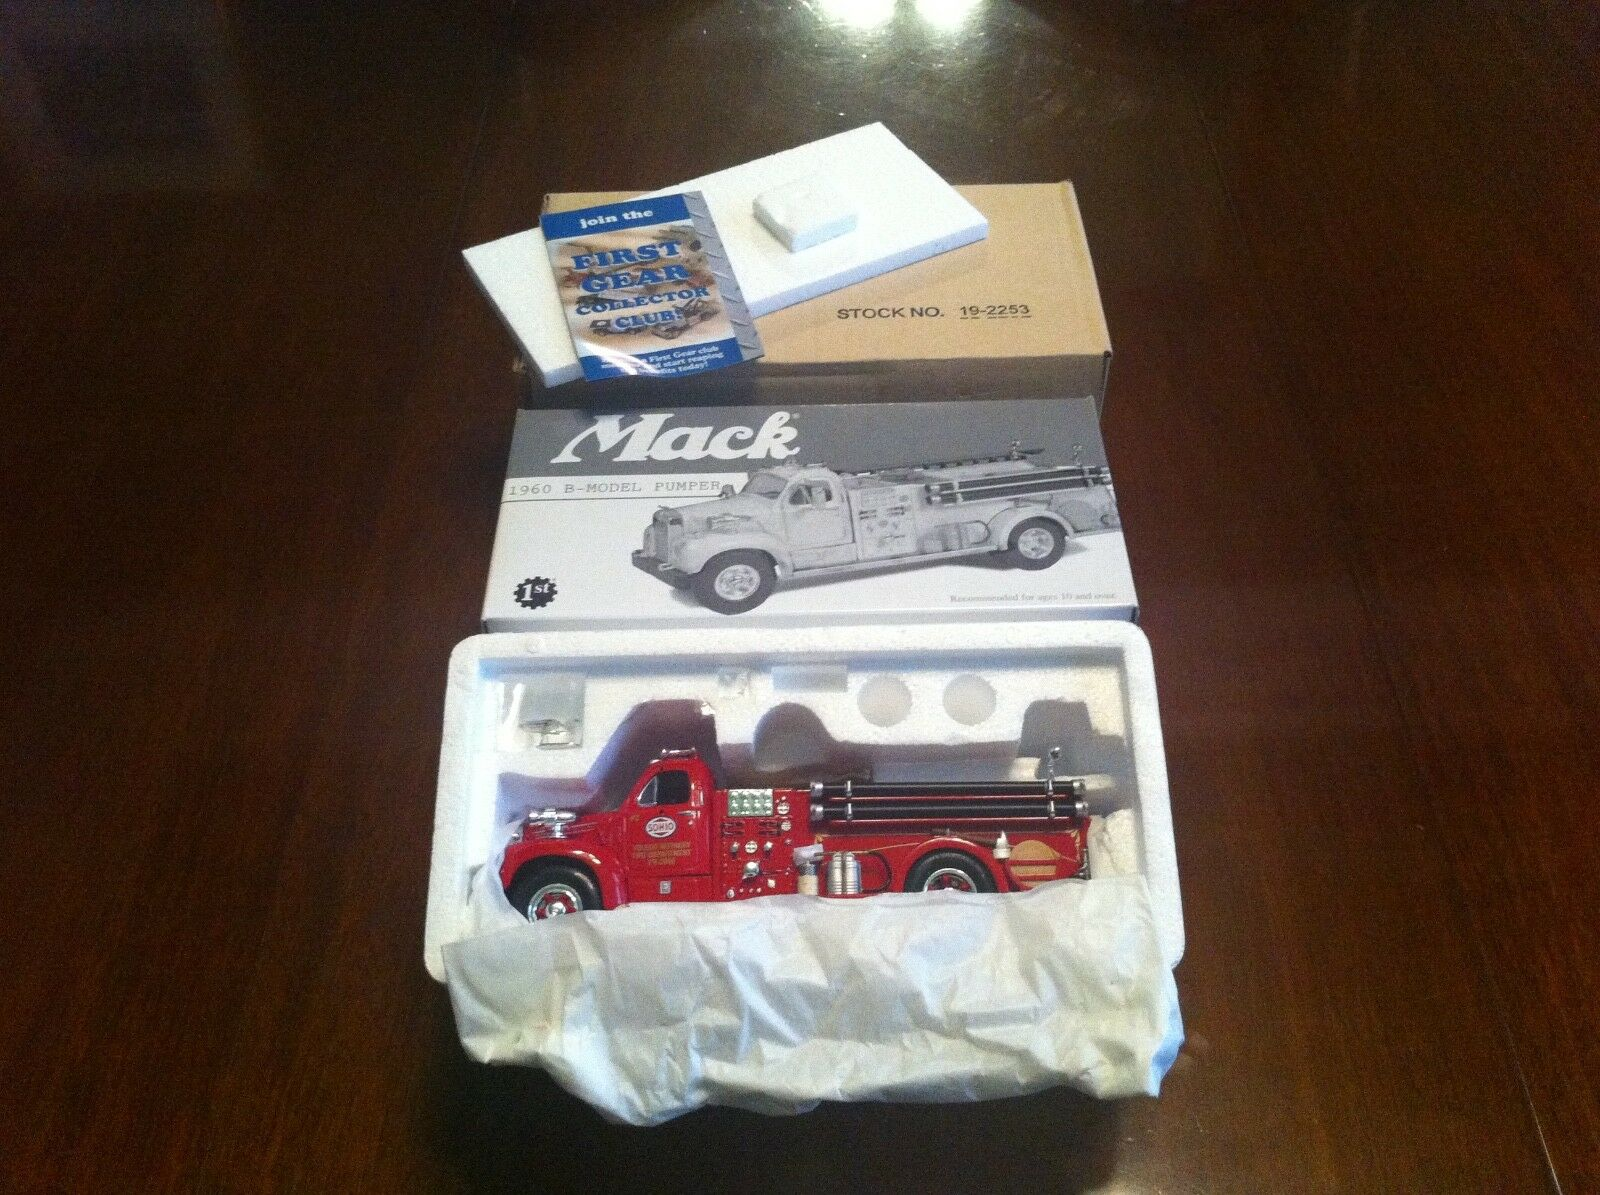 First Gear 19-2253 Sohio Mack 1960 B-Model Pumper Firetruck 1 1 1 34 Scale Diescast 55d